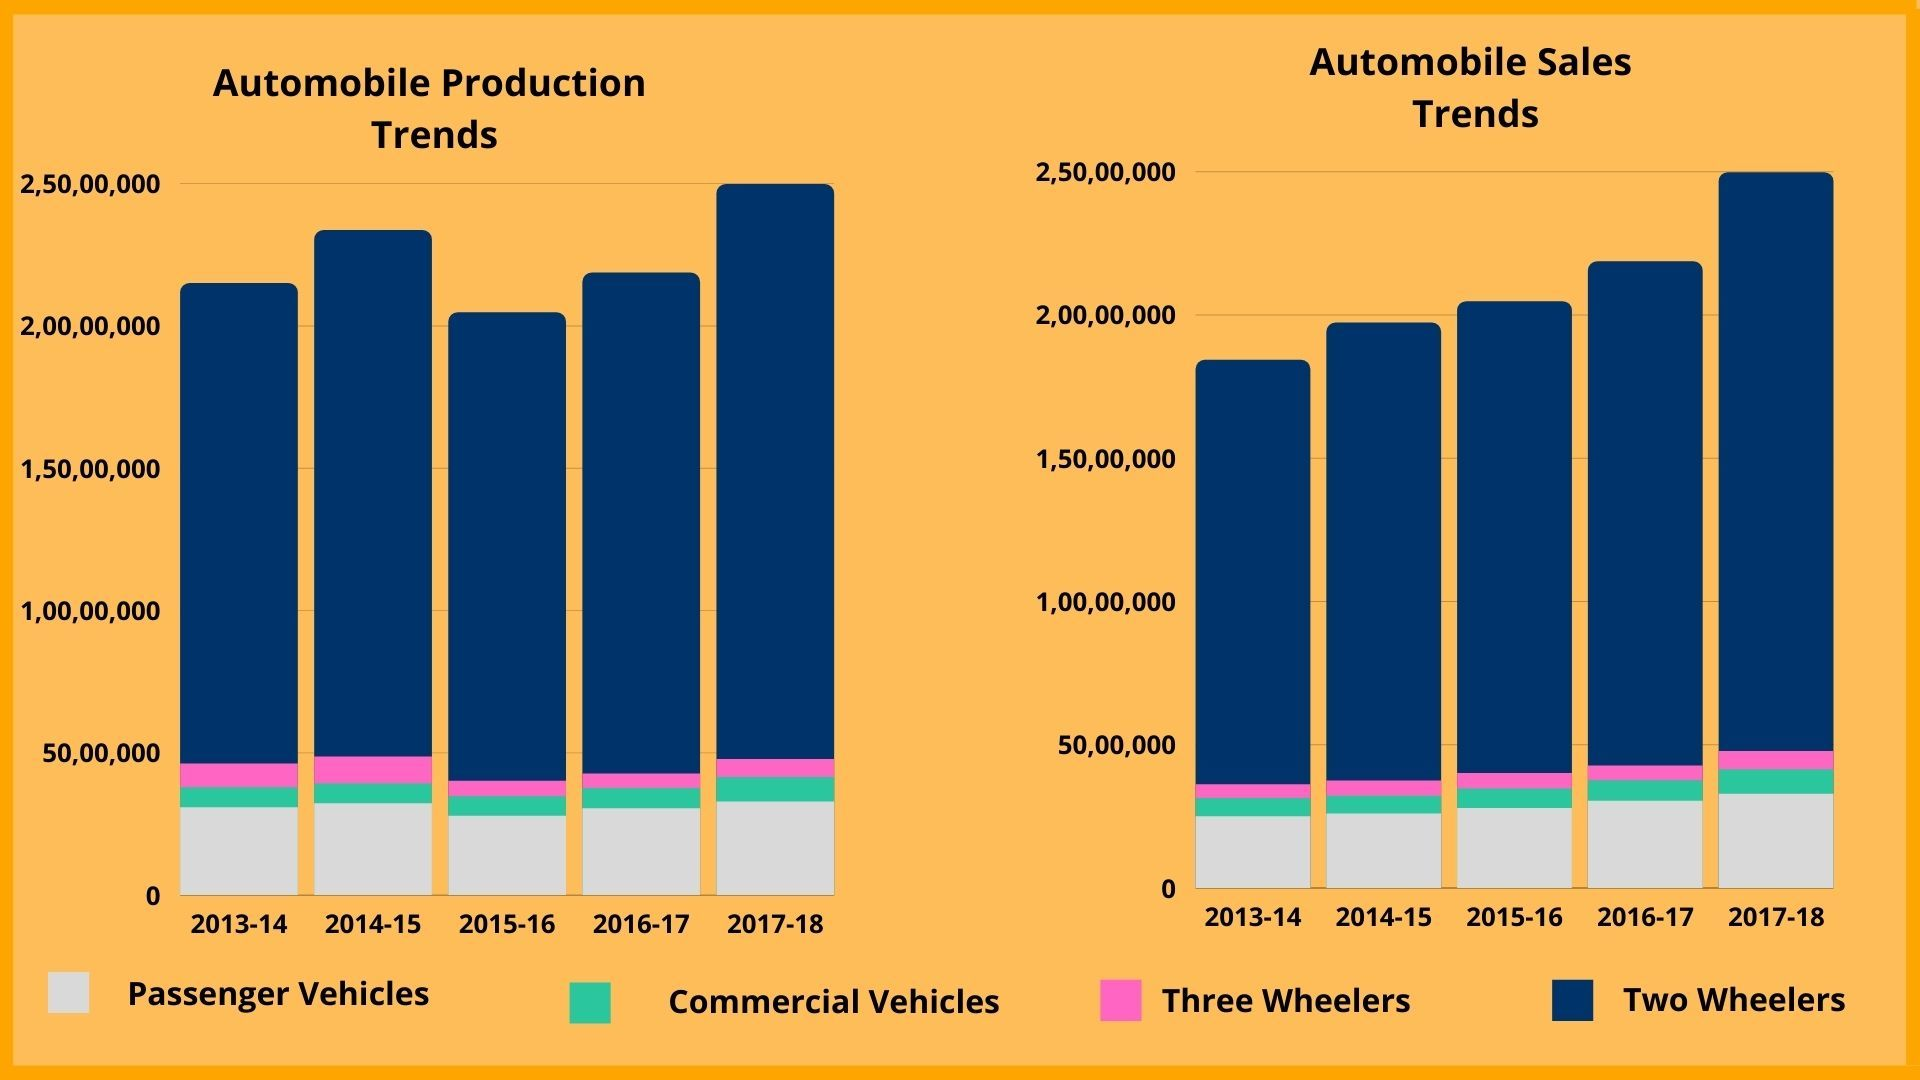 Automobile Production and Sales Trends